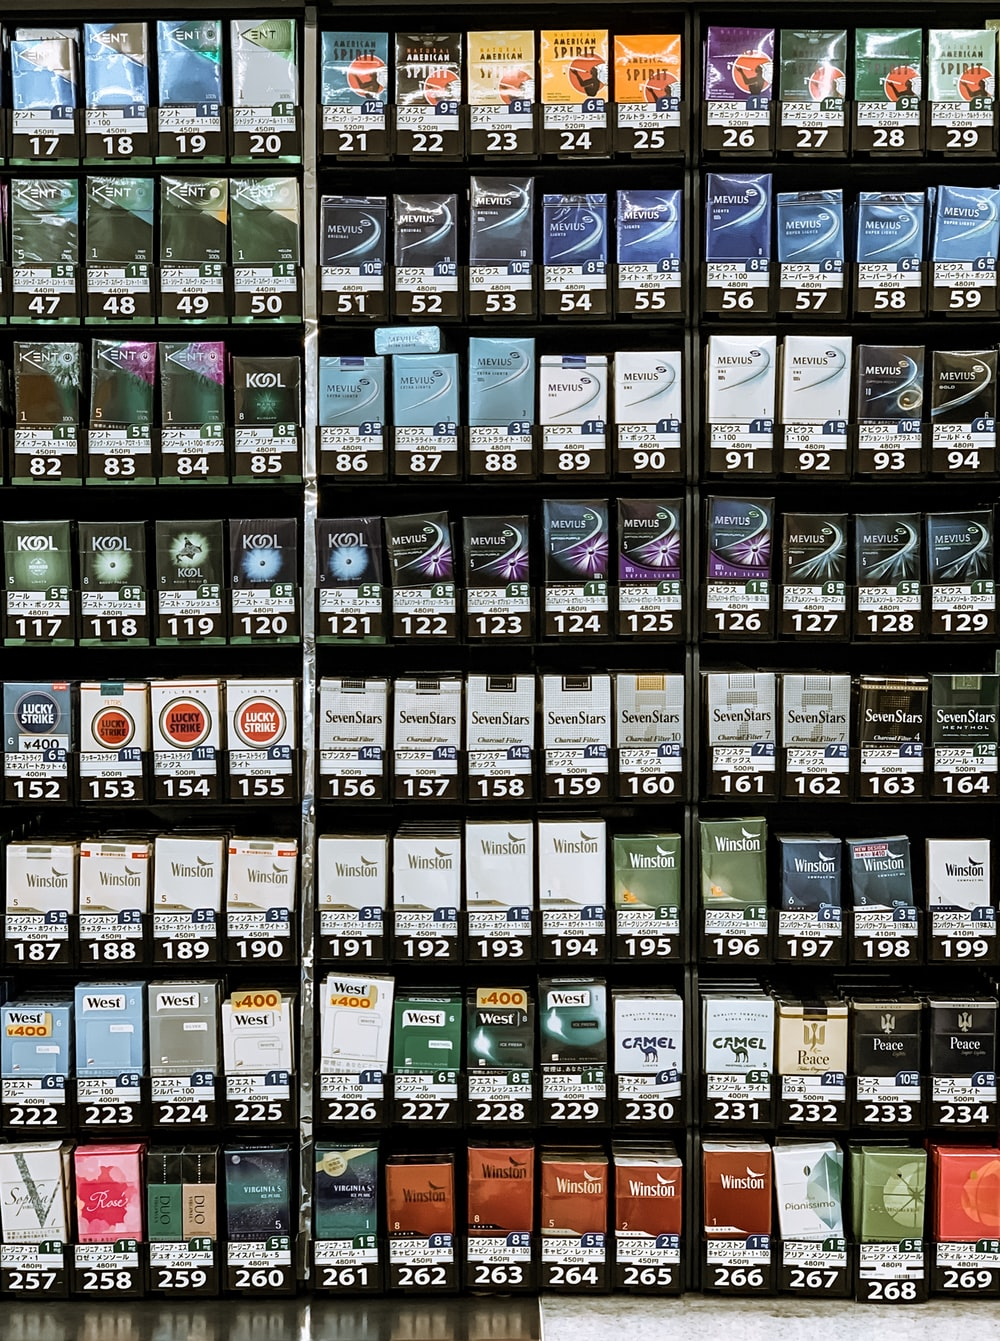 assorted flavor of cigarettes on display